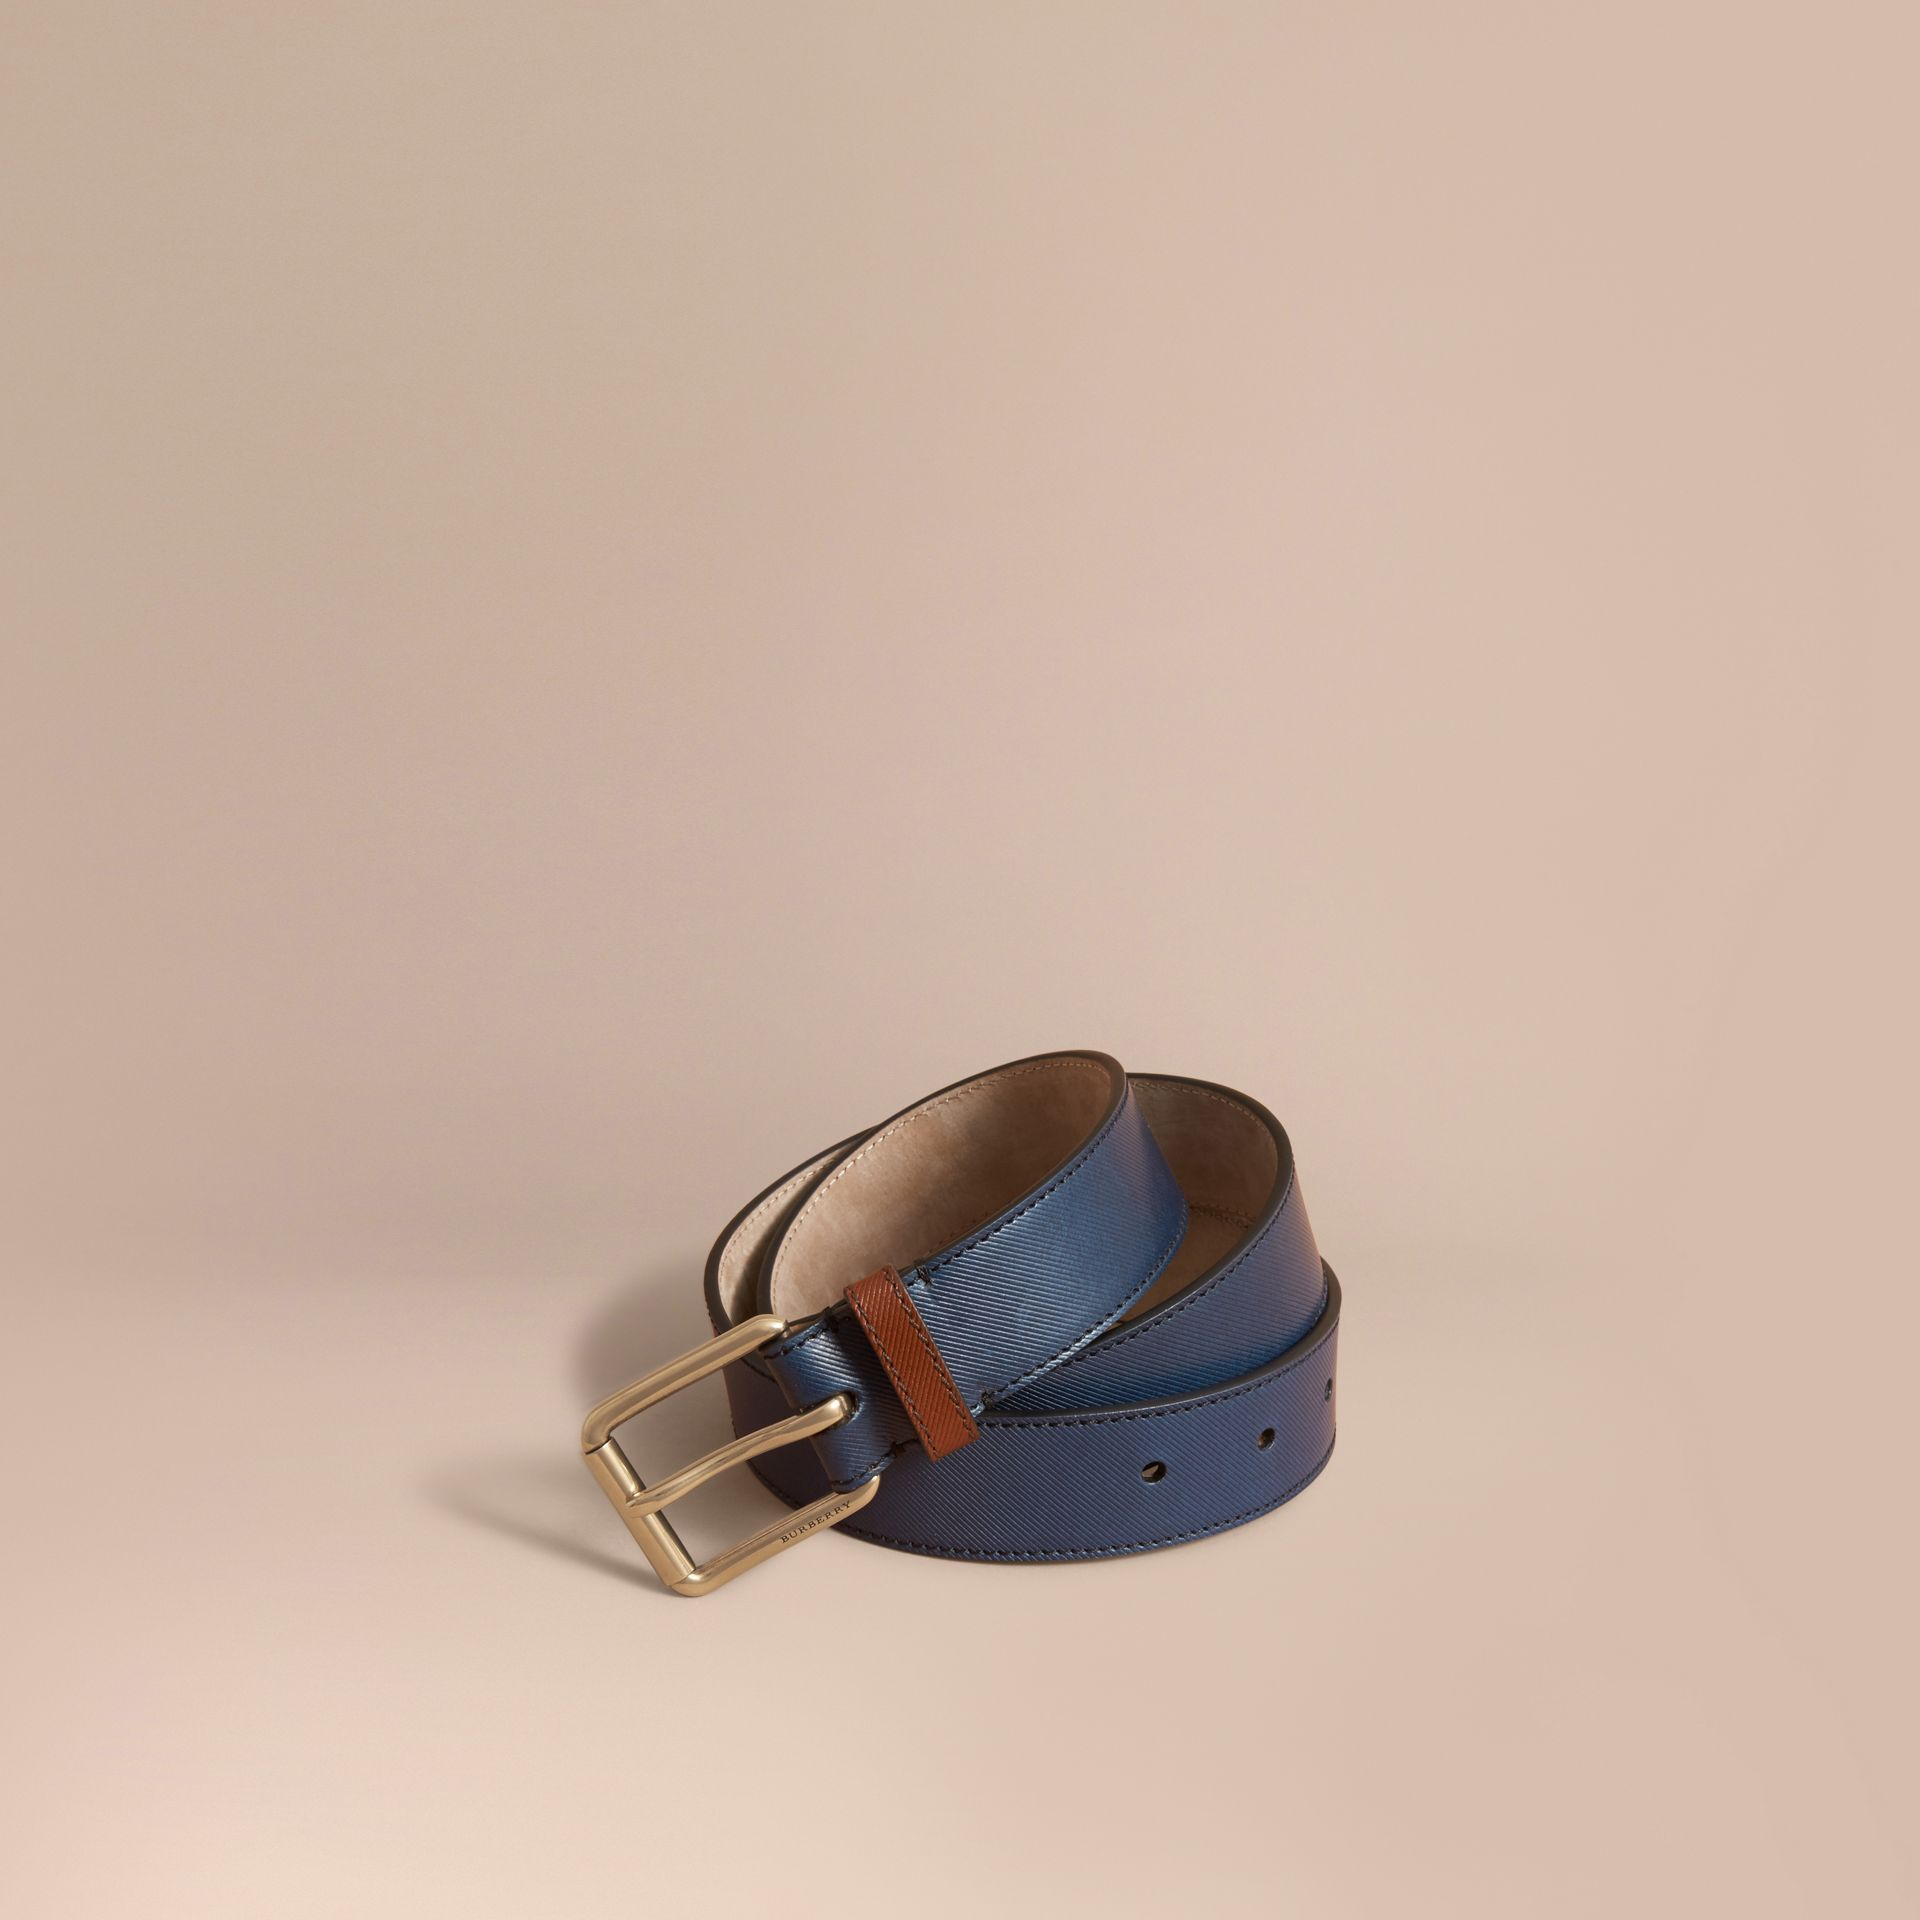 Two-tone Trench Leather Belt Dark Navy - gallery image 1